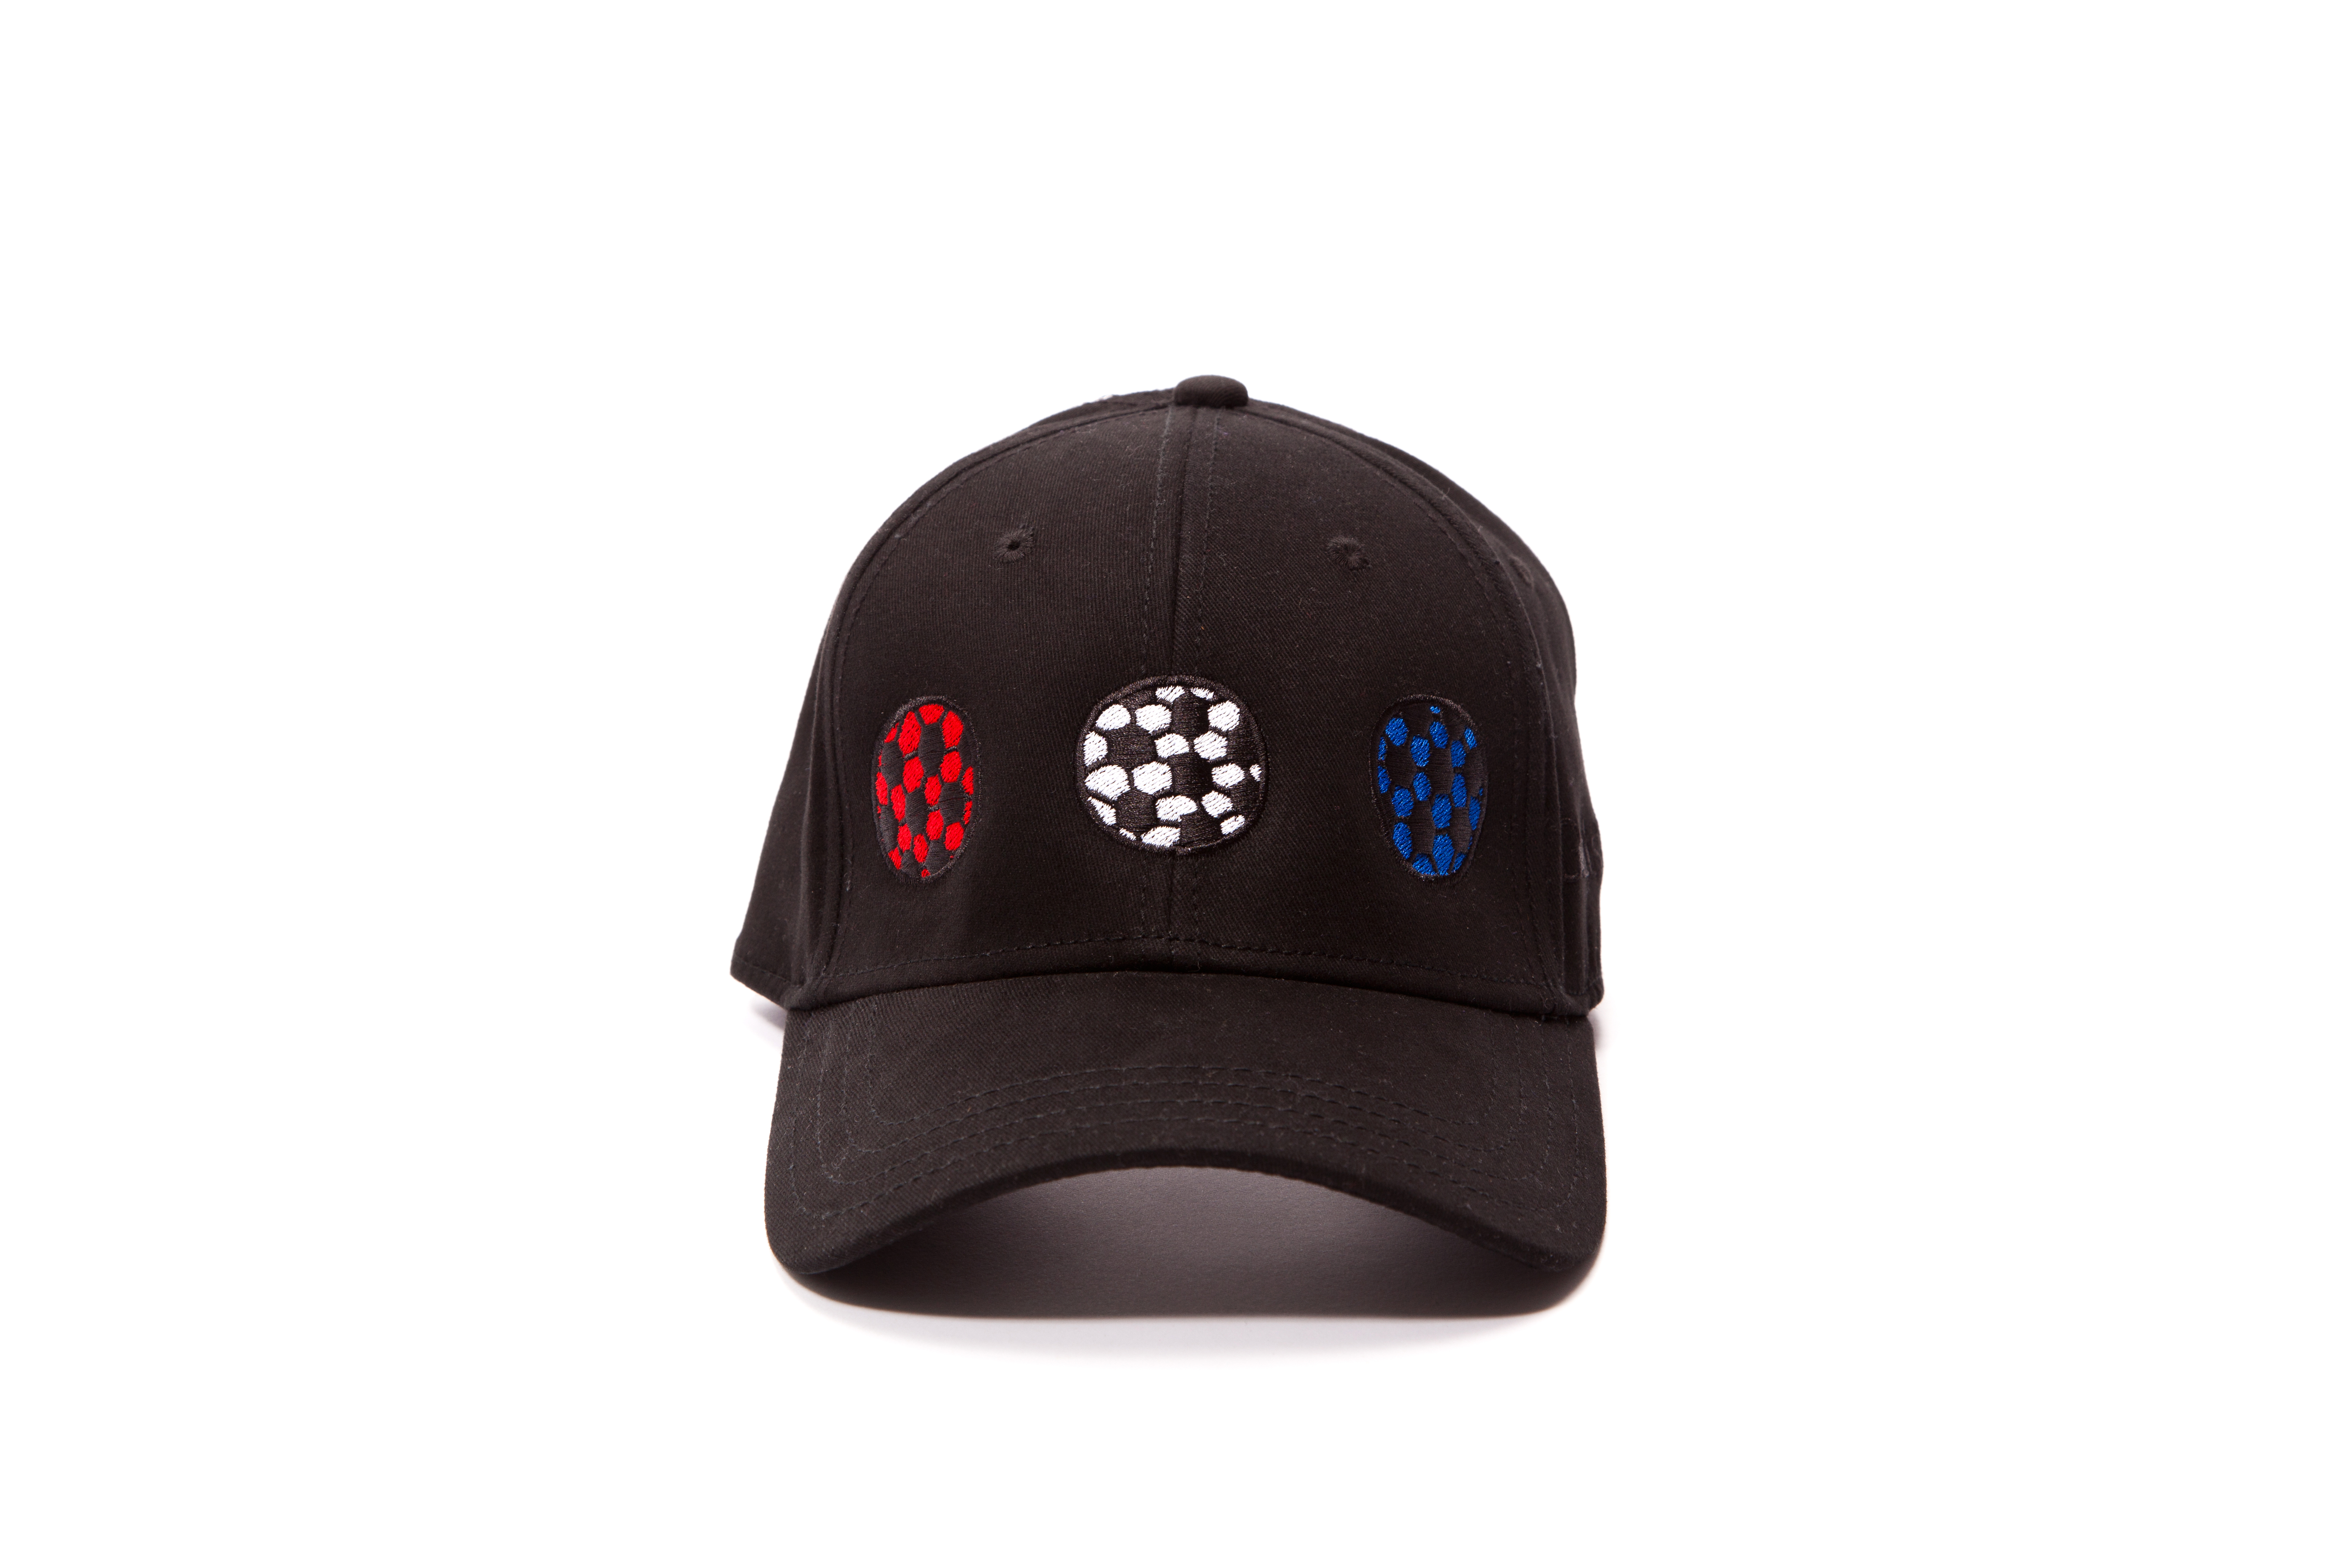 Gents-Hats-pepsi-live-for-now-capsule-collection